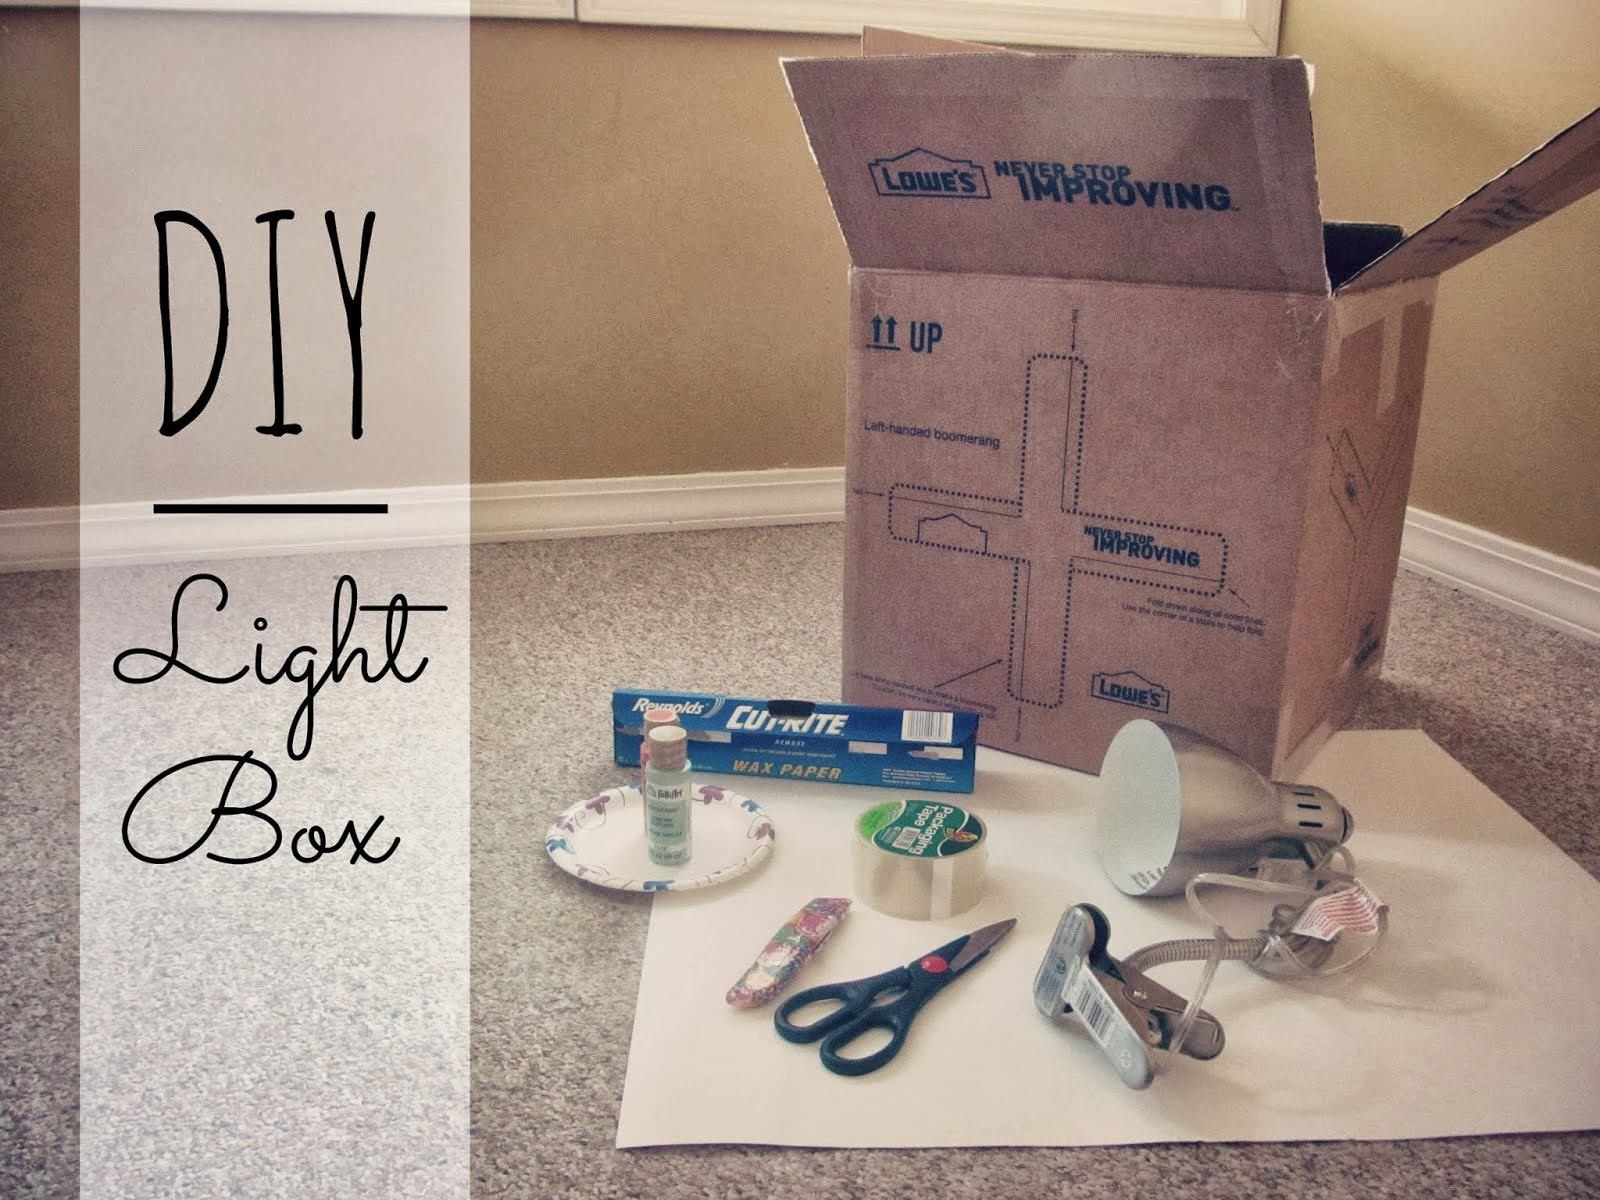 http://elcrumbo.blogspot.com/2014/02/diy-light-box.html